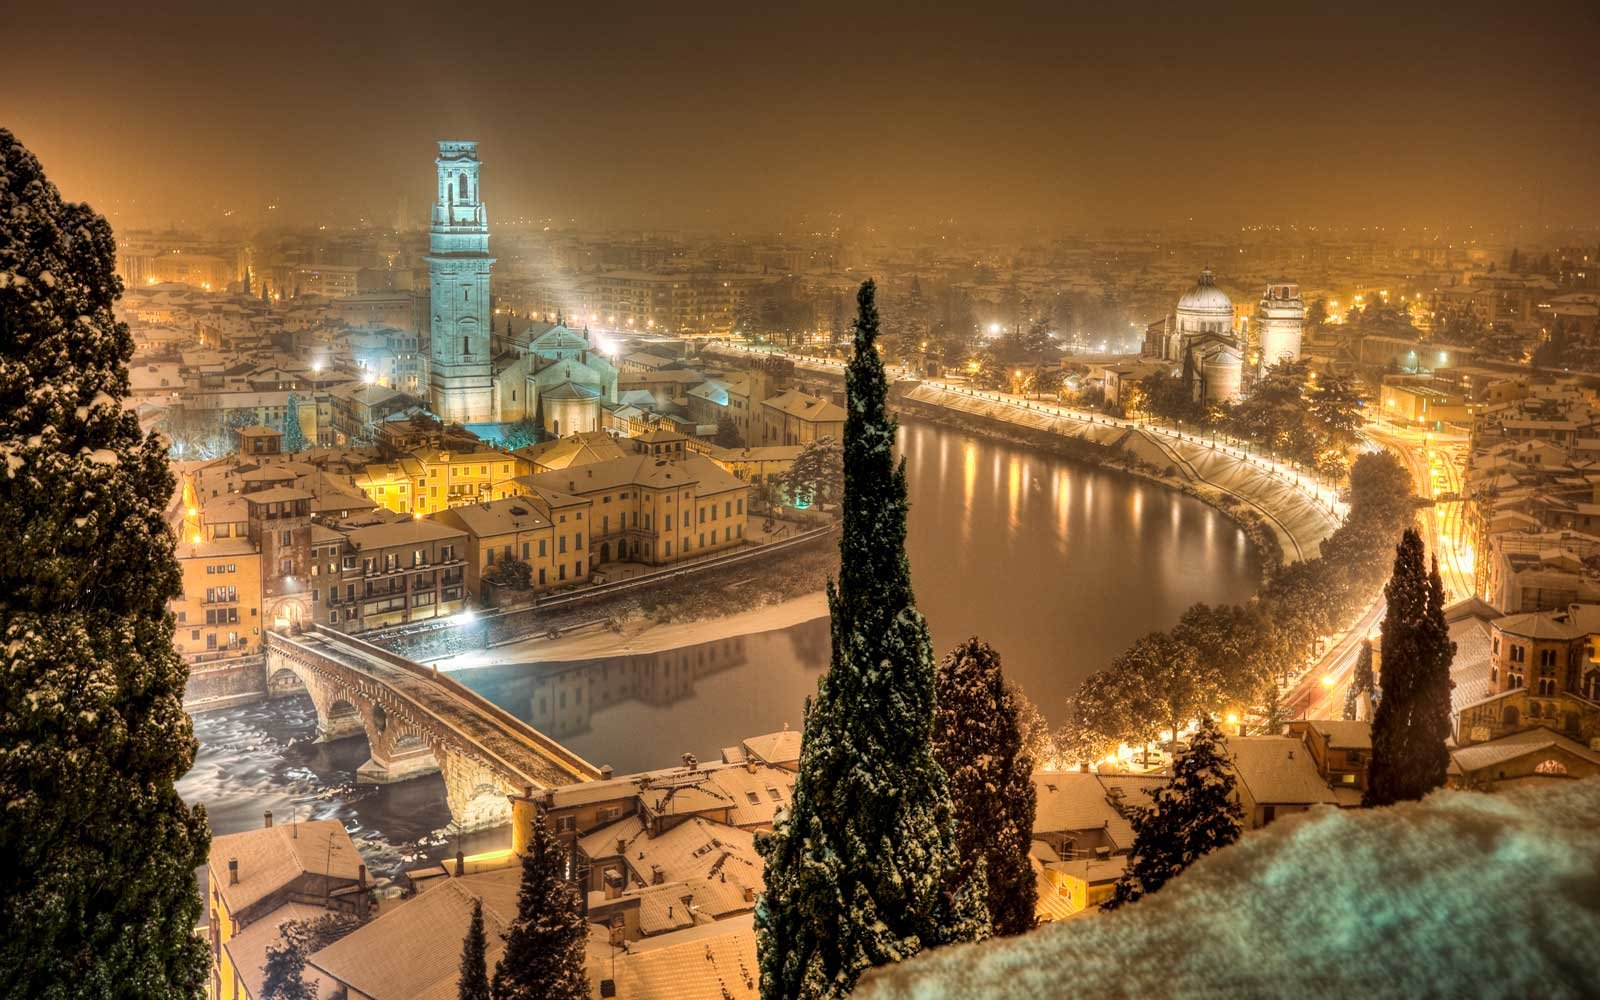 A panoramic view of Verona, Italy by night